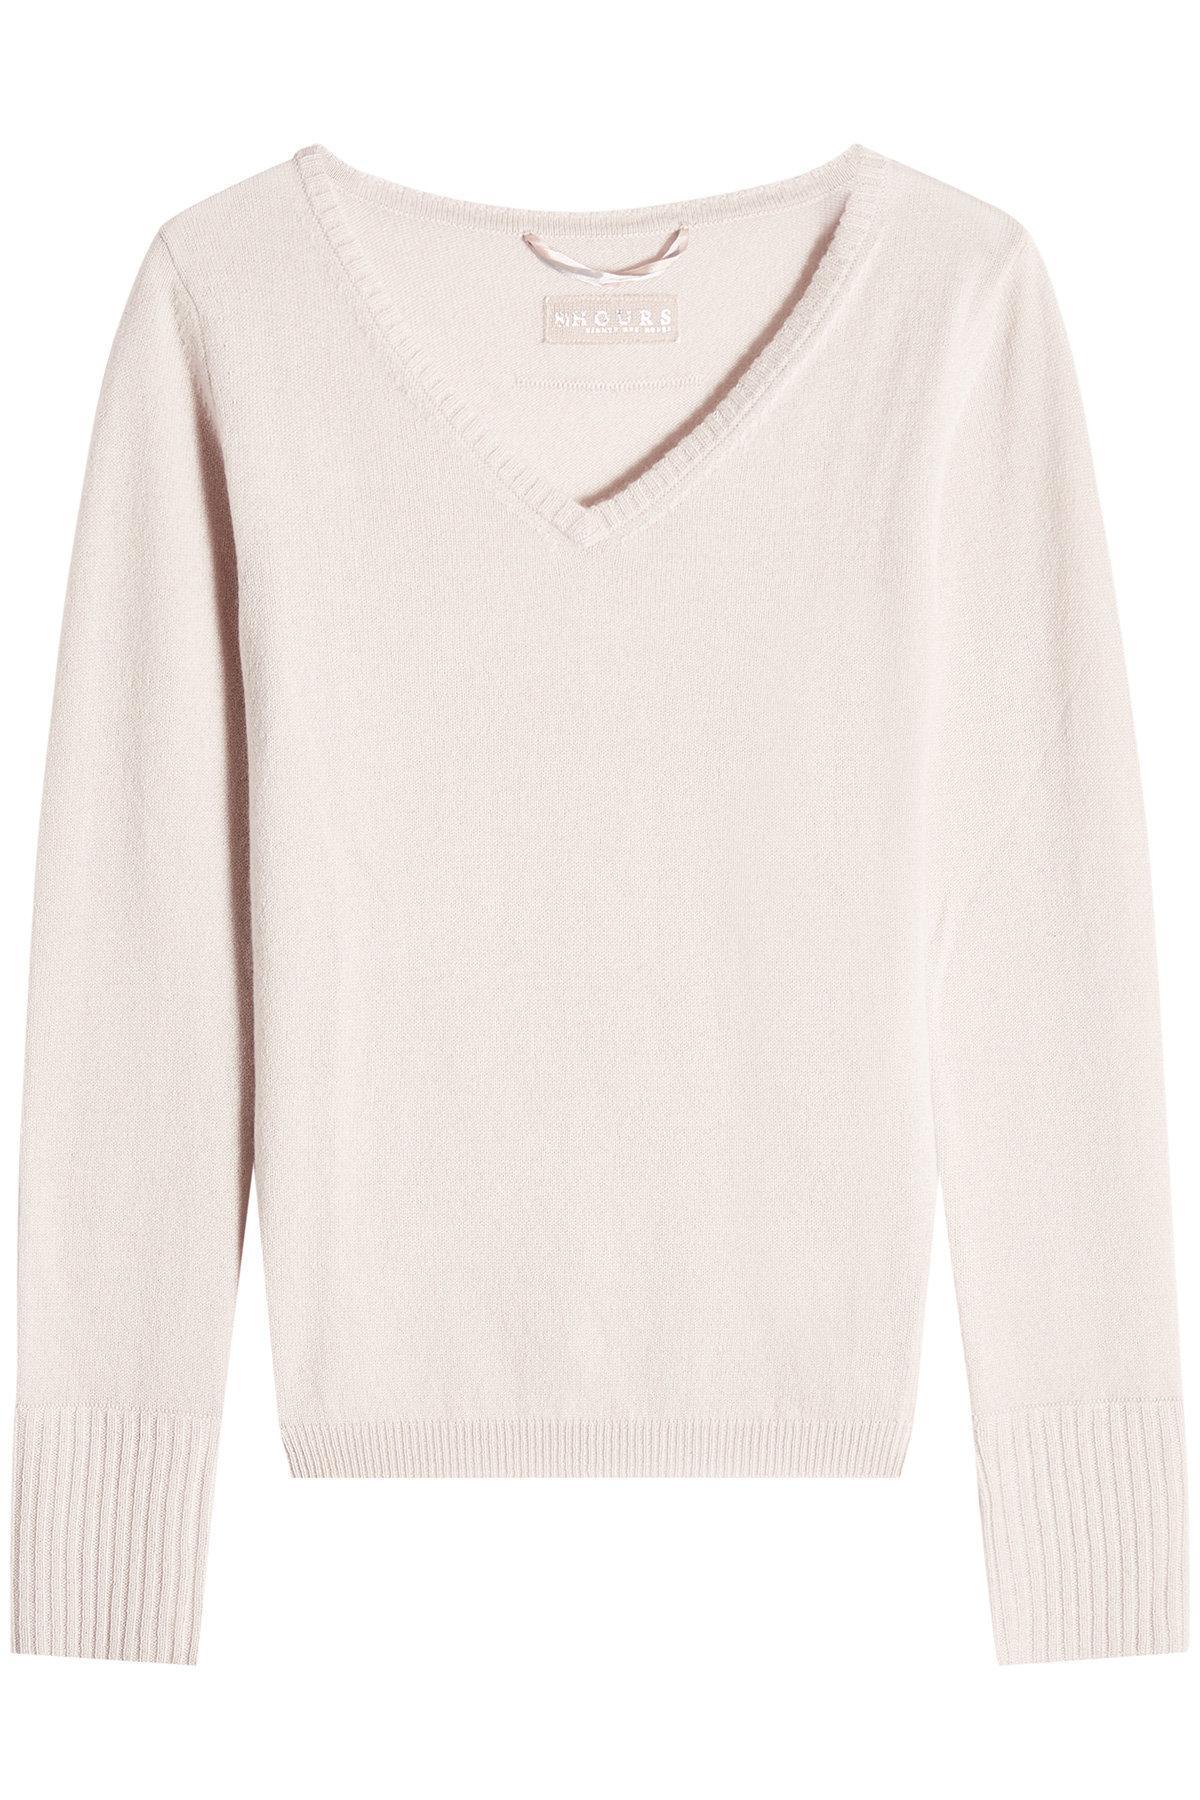 81 Hours Cashmere Pullover In Pink